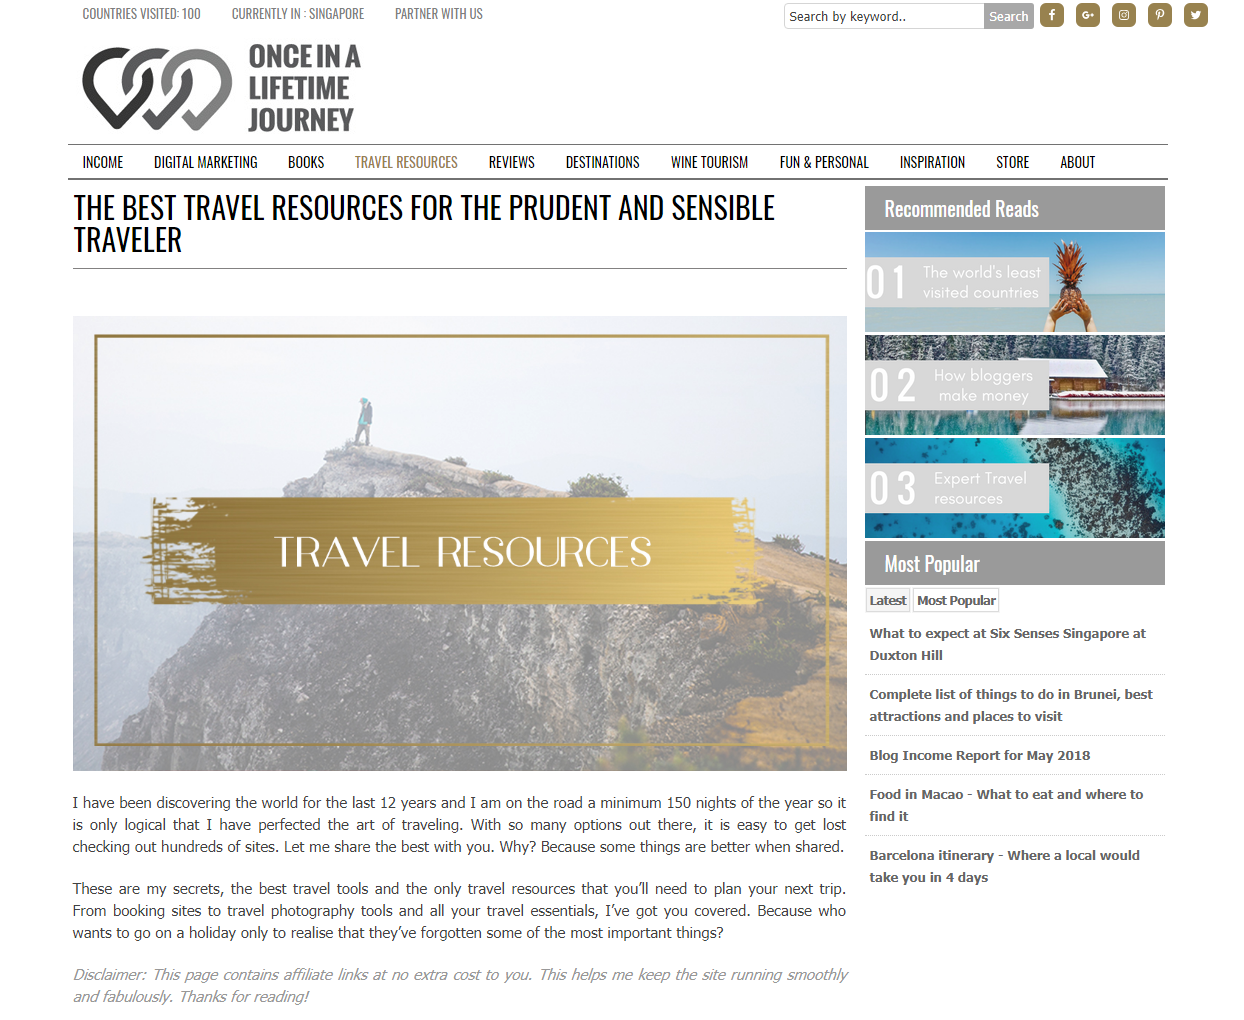 once in a lifetime journey travel resources